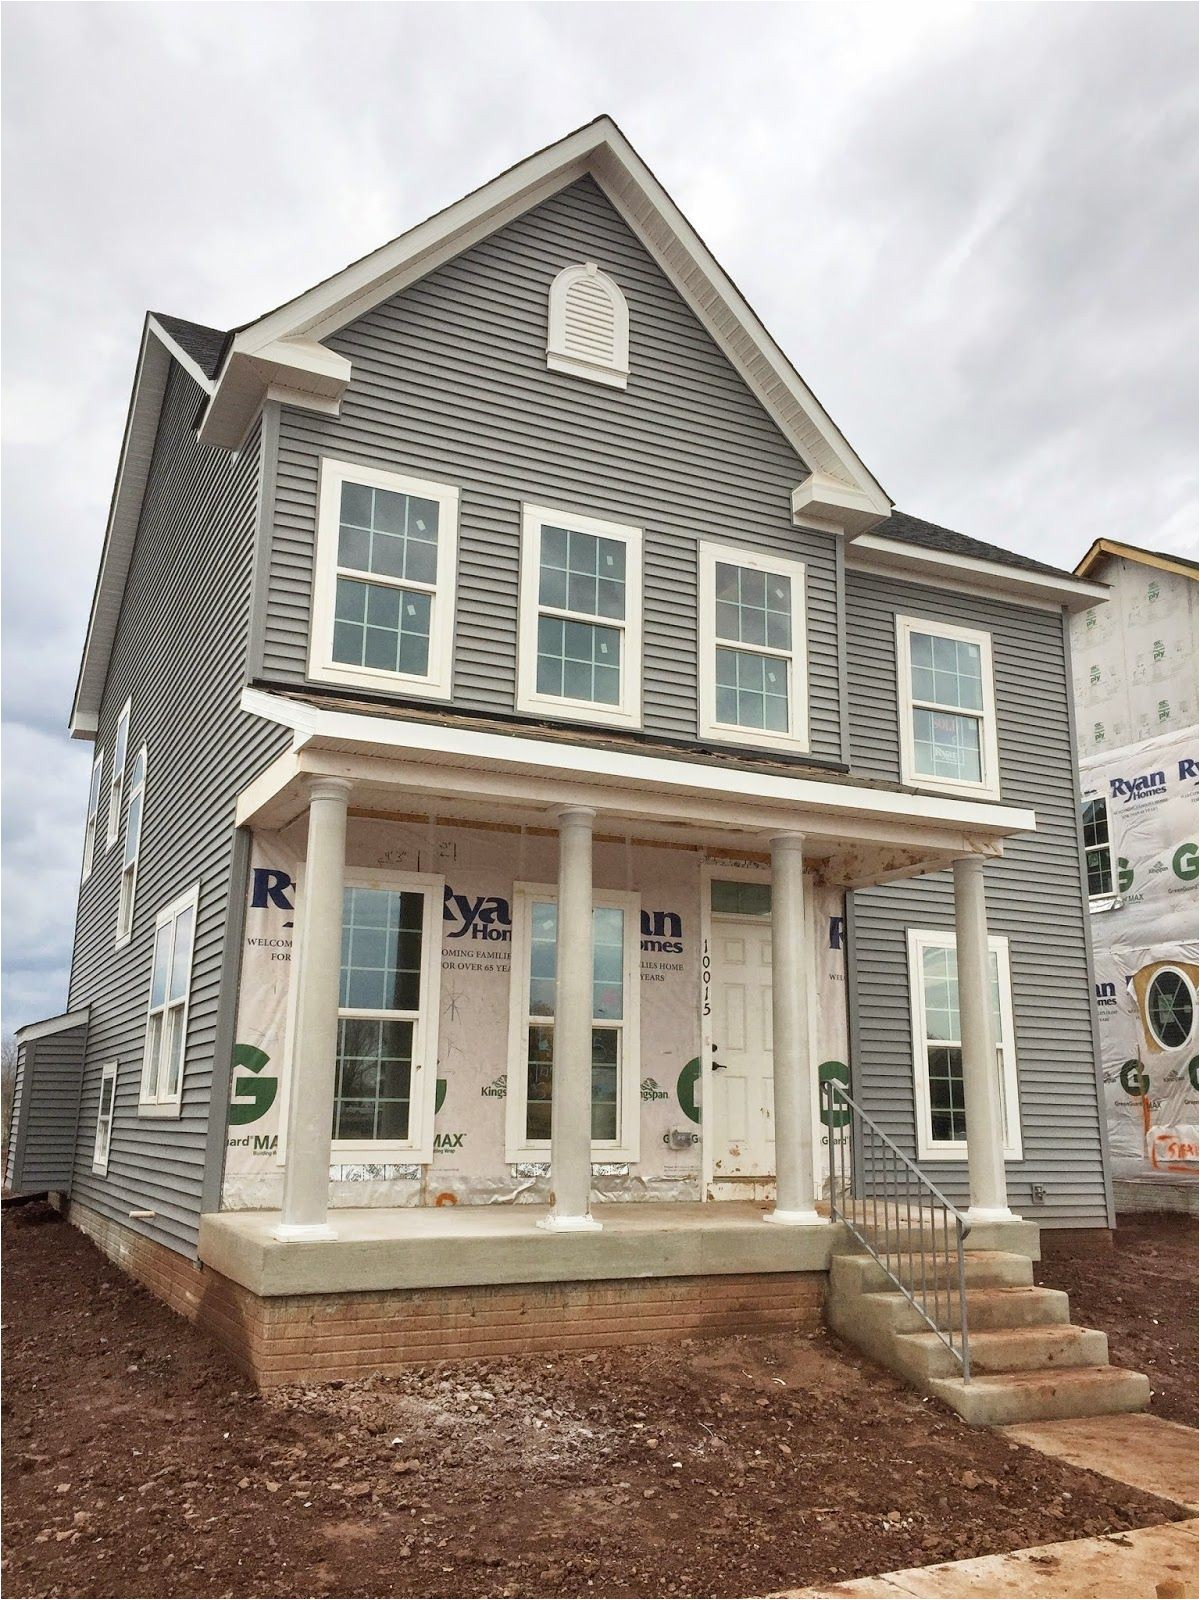 James Hardie Aged Pewter Photos Image Result for Ryan Homes Pewter House Pinterest Ryan Homes